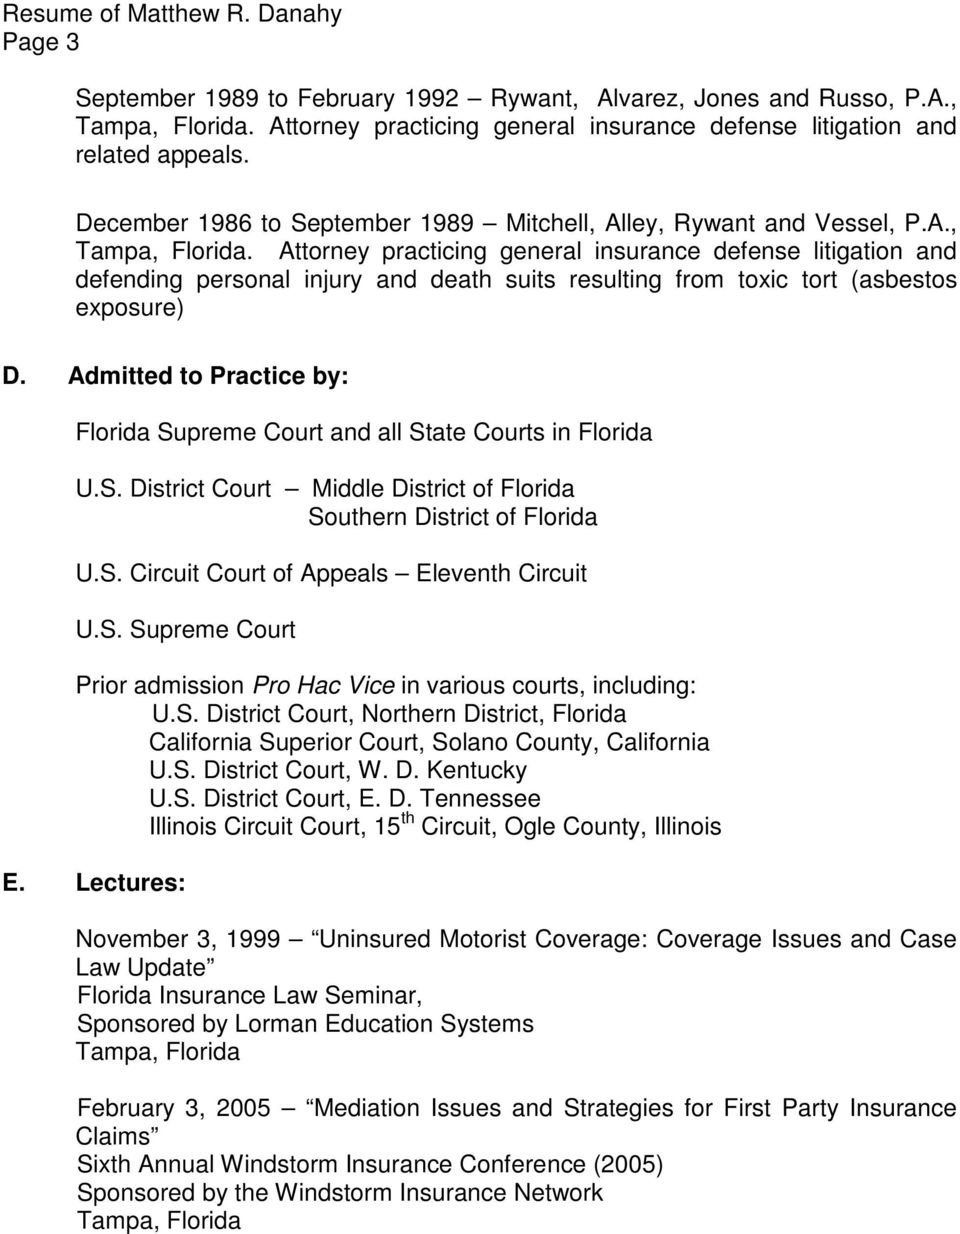 Admitted to Practice by: Florida Supreme Court and all State Courts in Florida U.S. District Court Middle District of Florida Southern District of Florida U.S. Circuit Court of Appeals Eleventh Circuit U.